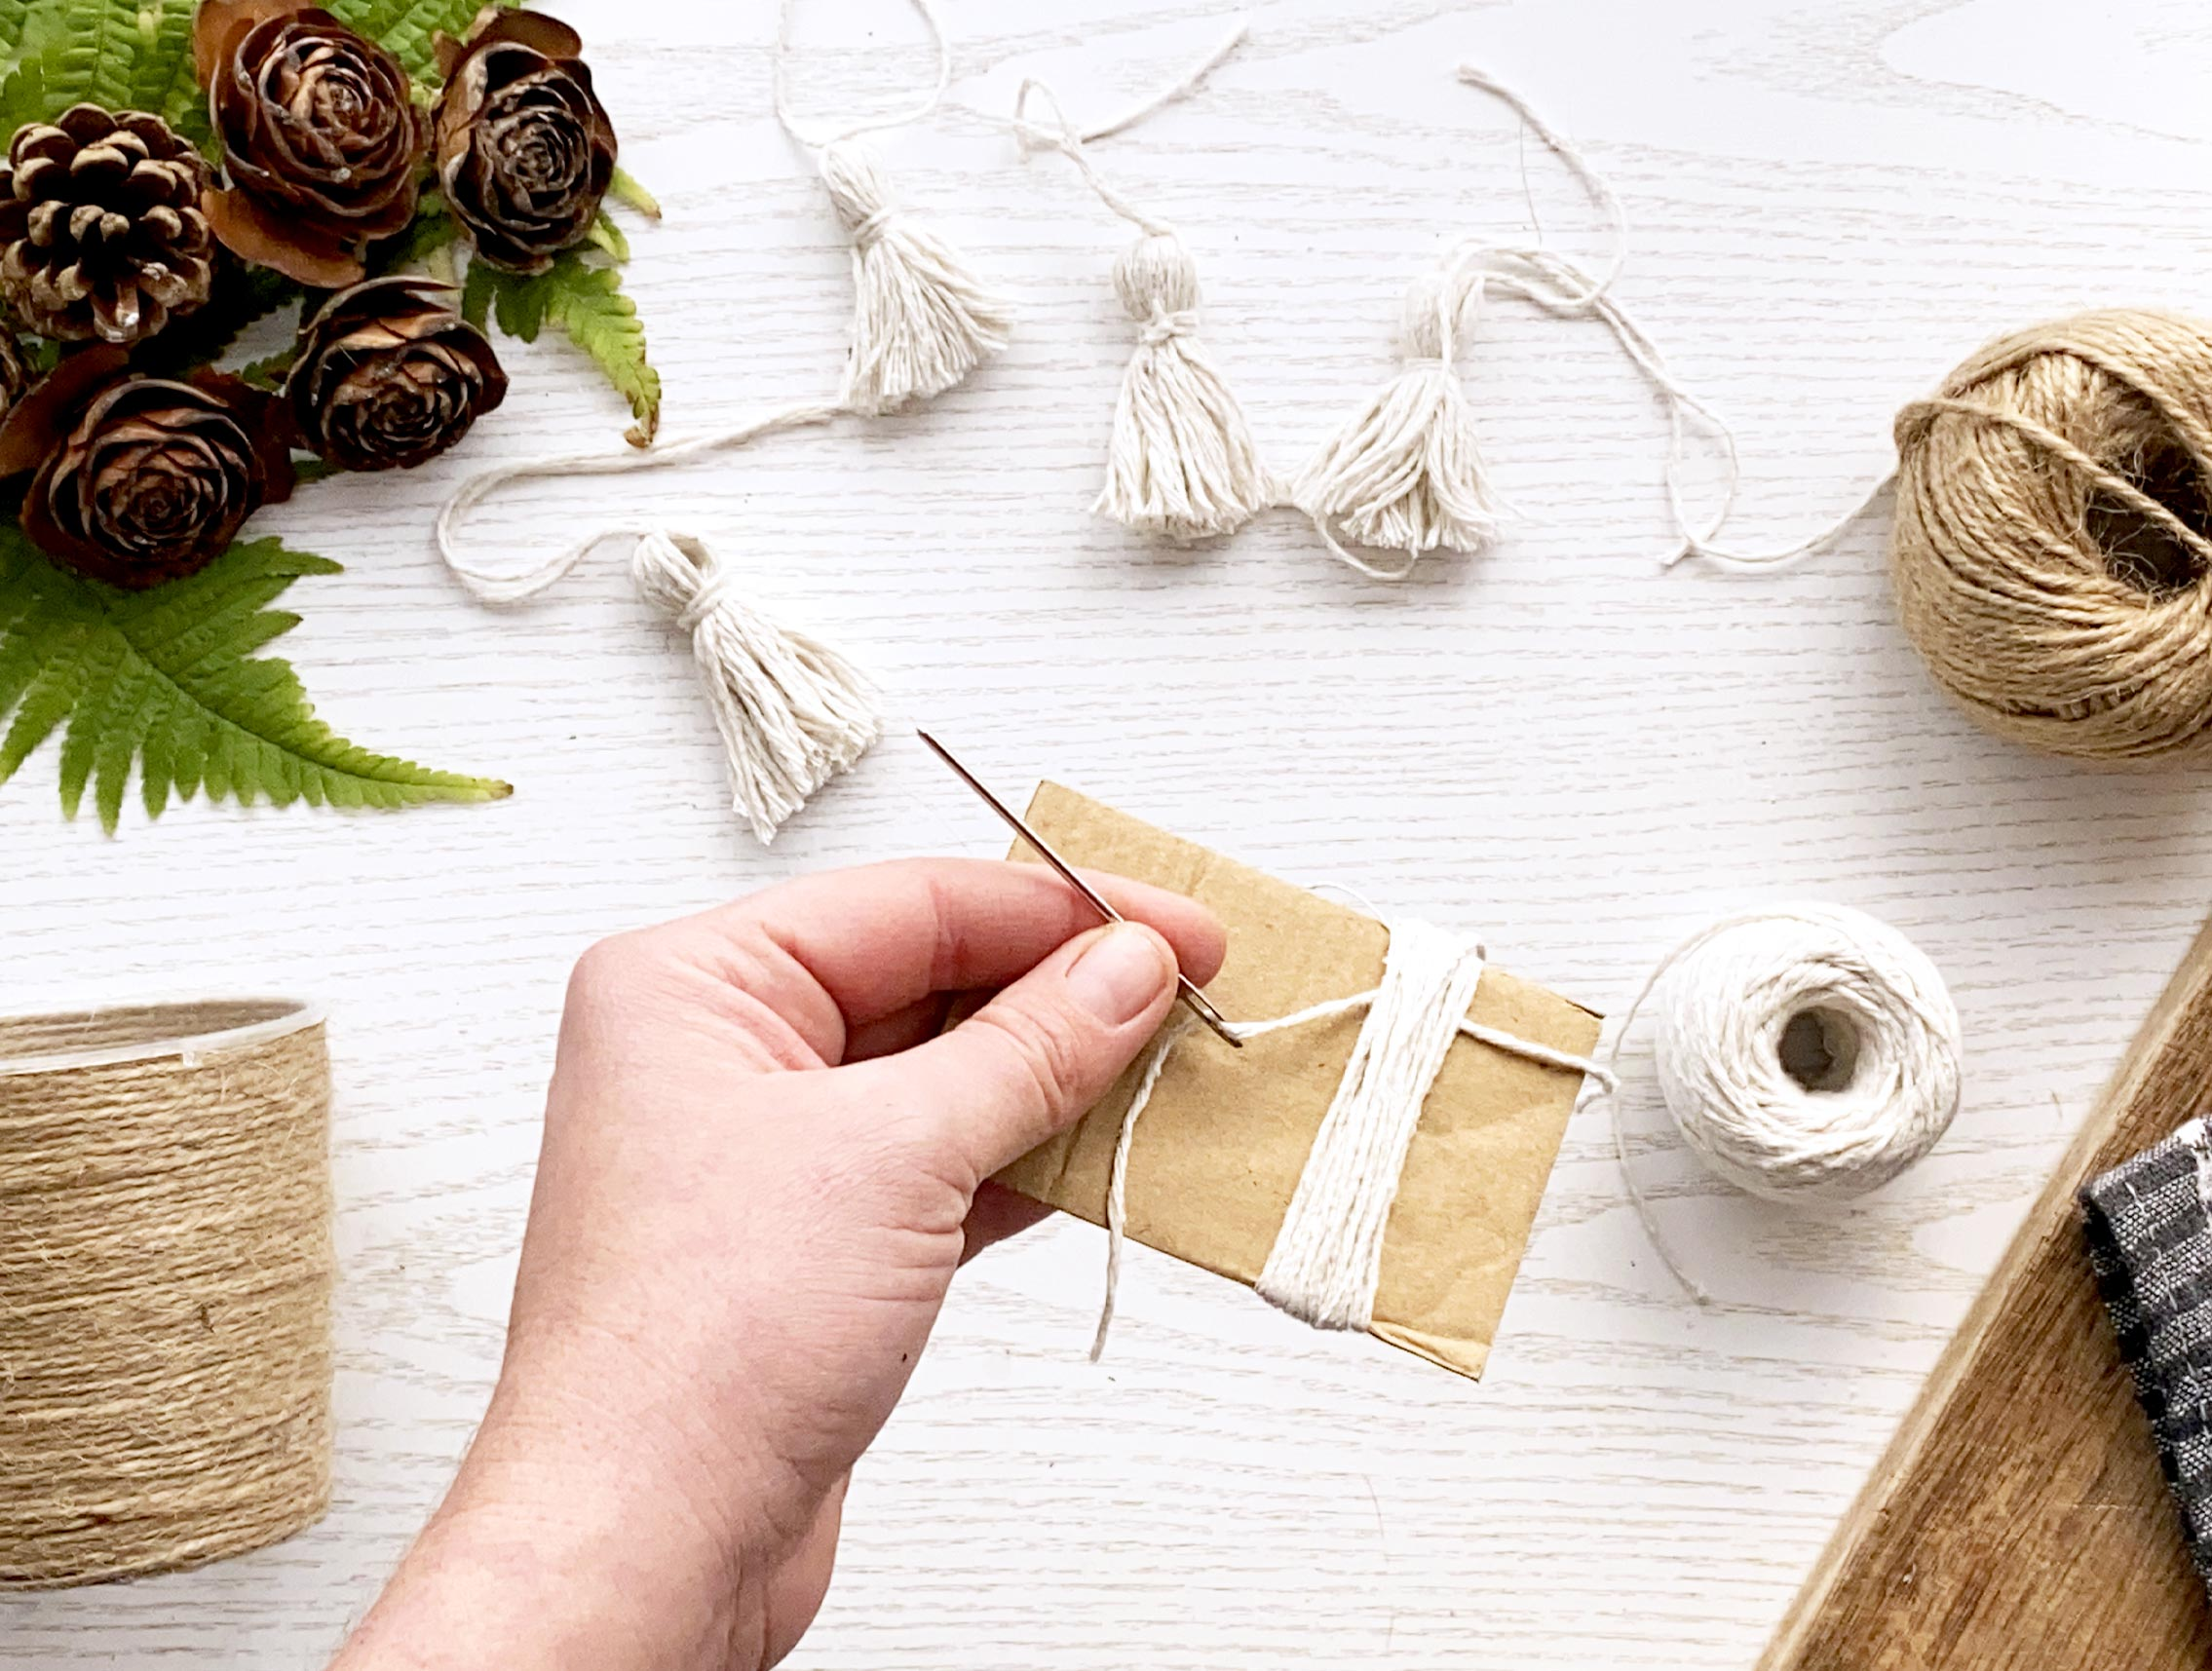 Needle pulling thread througn string wrapped around cardboard to create tassel